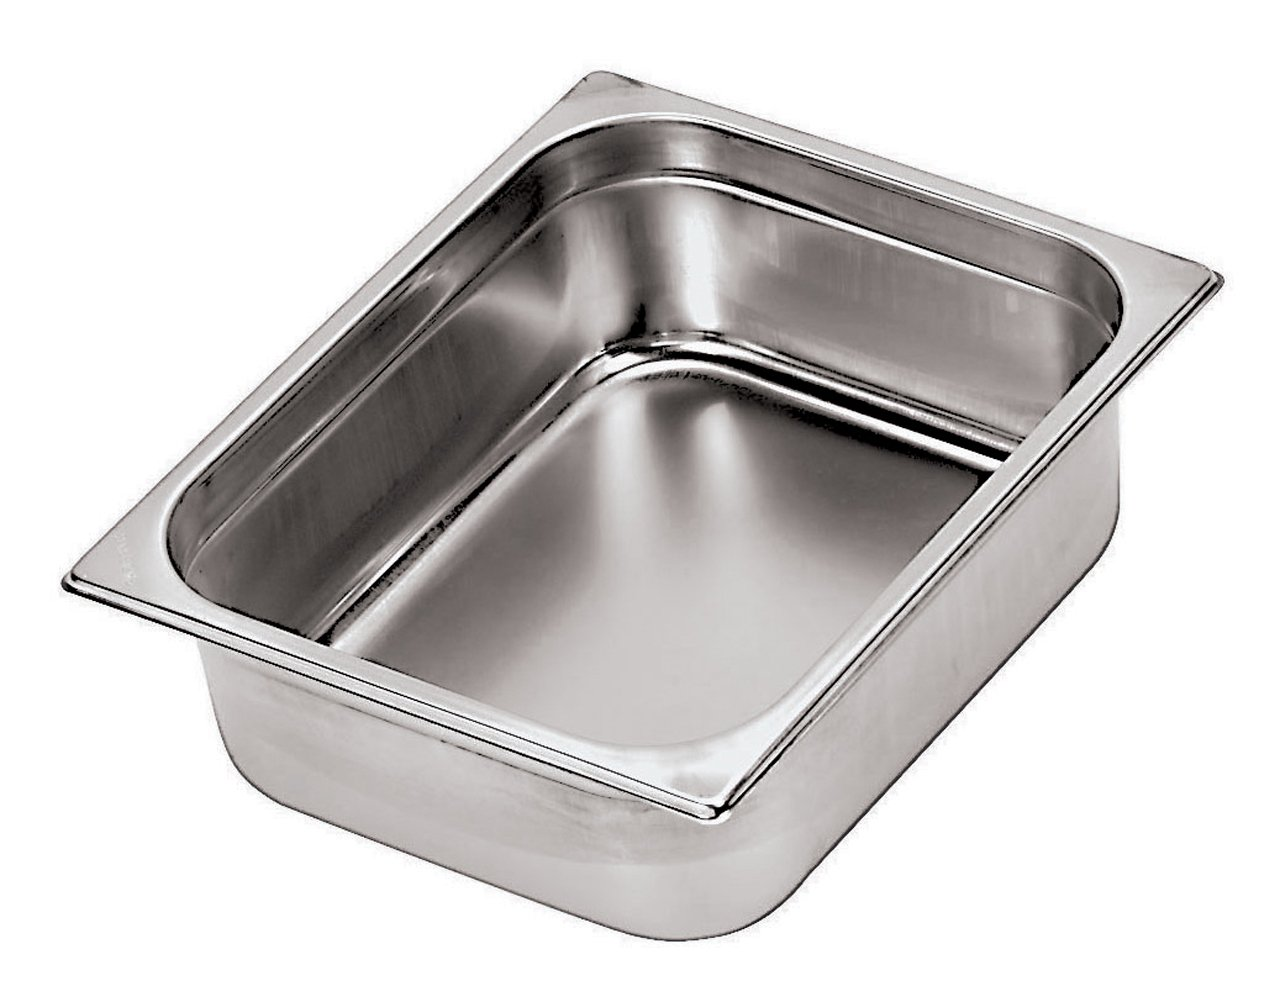 Paderno World Cuisine 12 3/4 inches by 6 1/4 inches Stainless-steel Hotel Pan - 1/4 (depth: 2 1/2 inches)